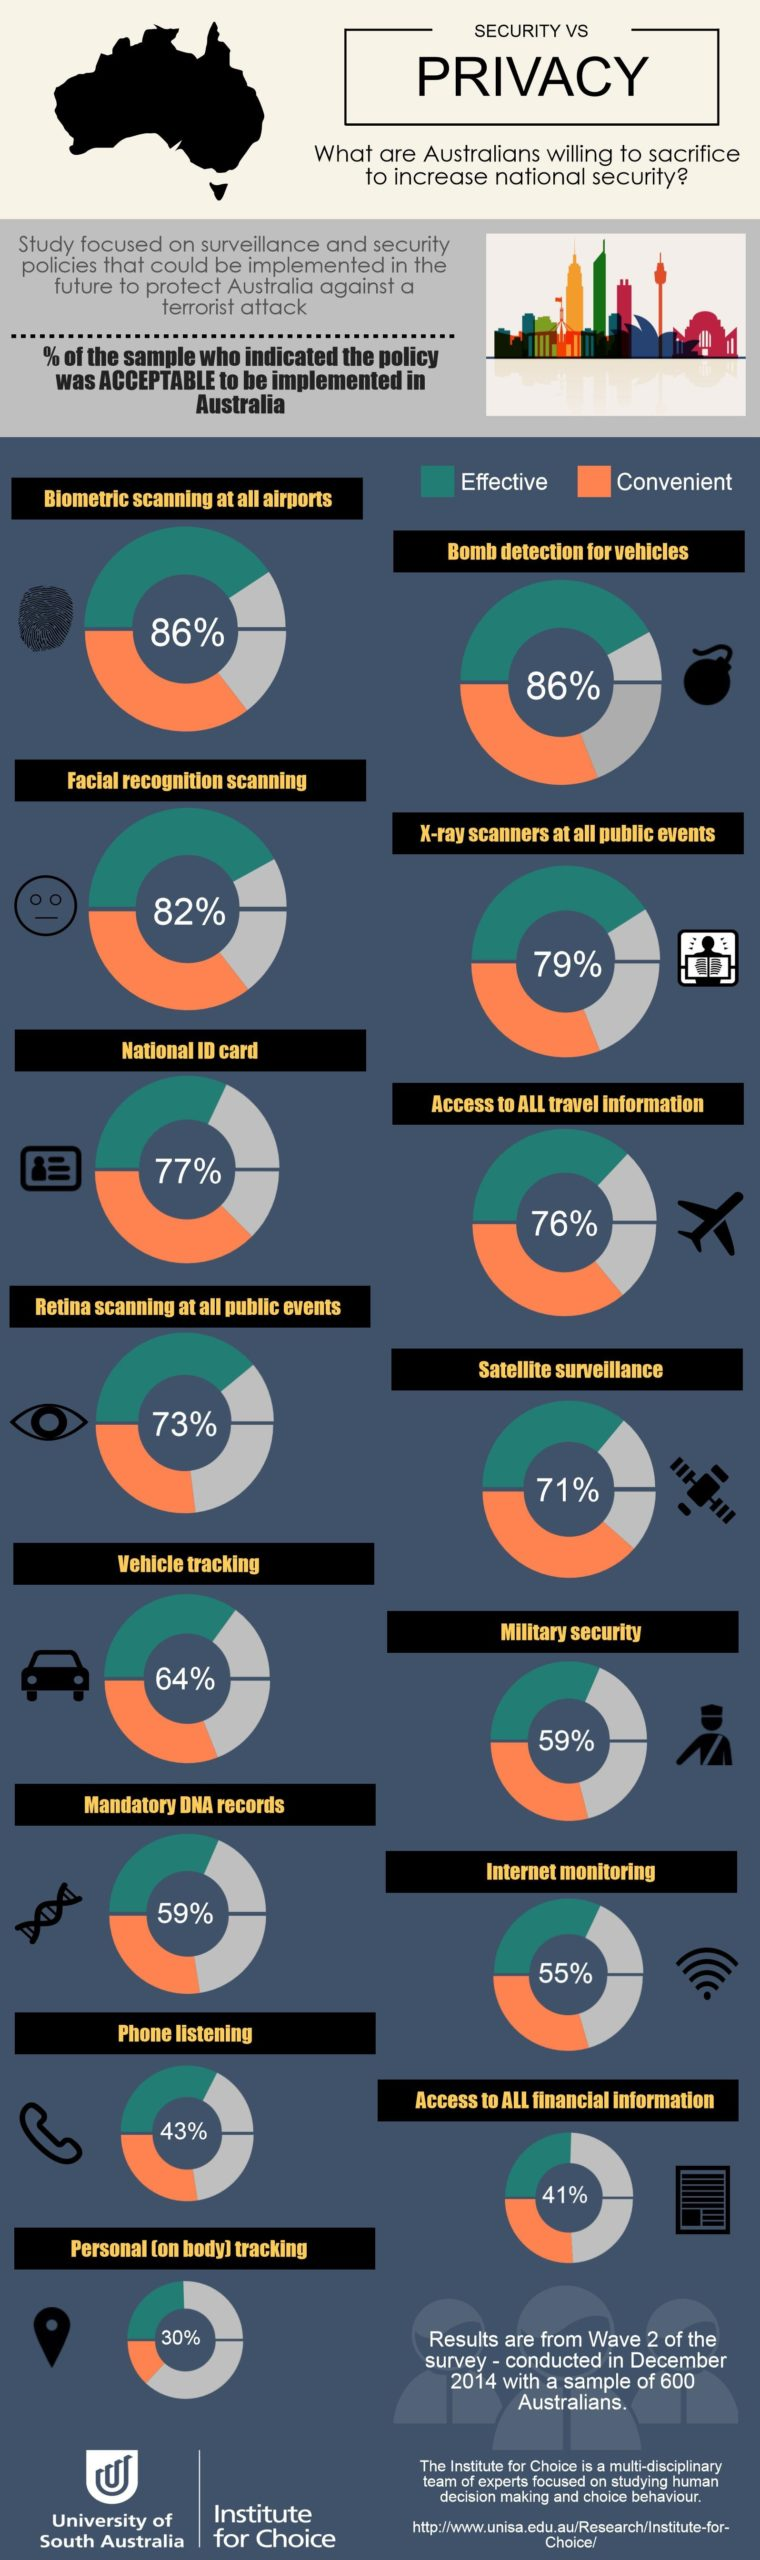 An infographic from the UniSA study.